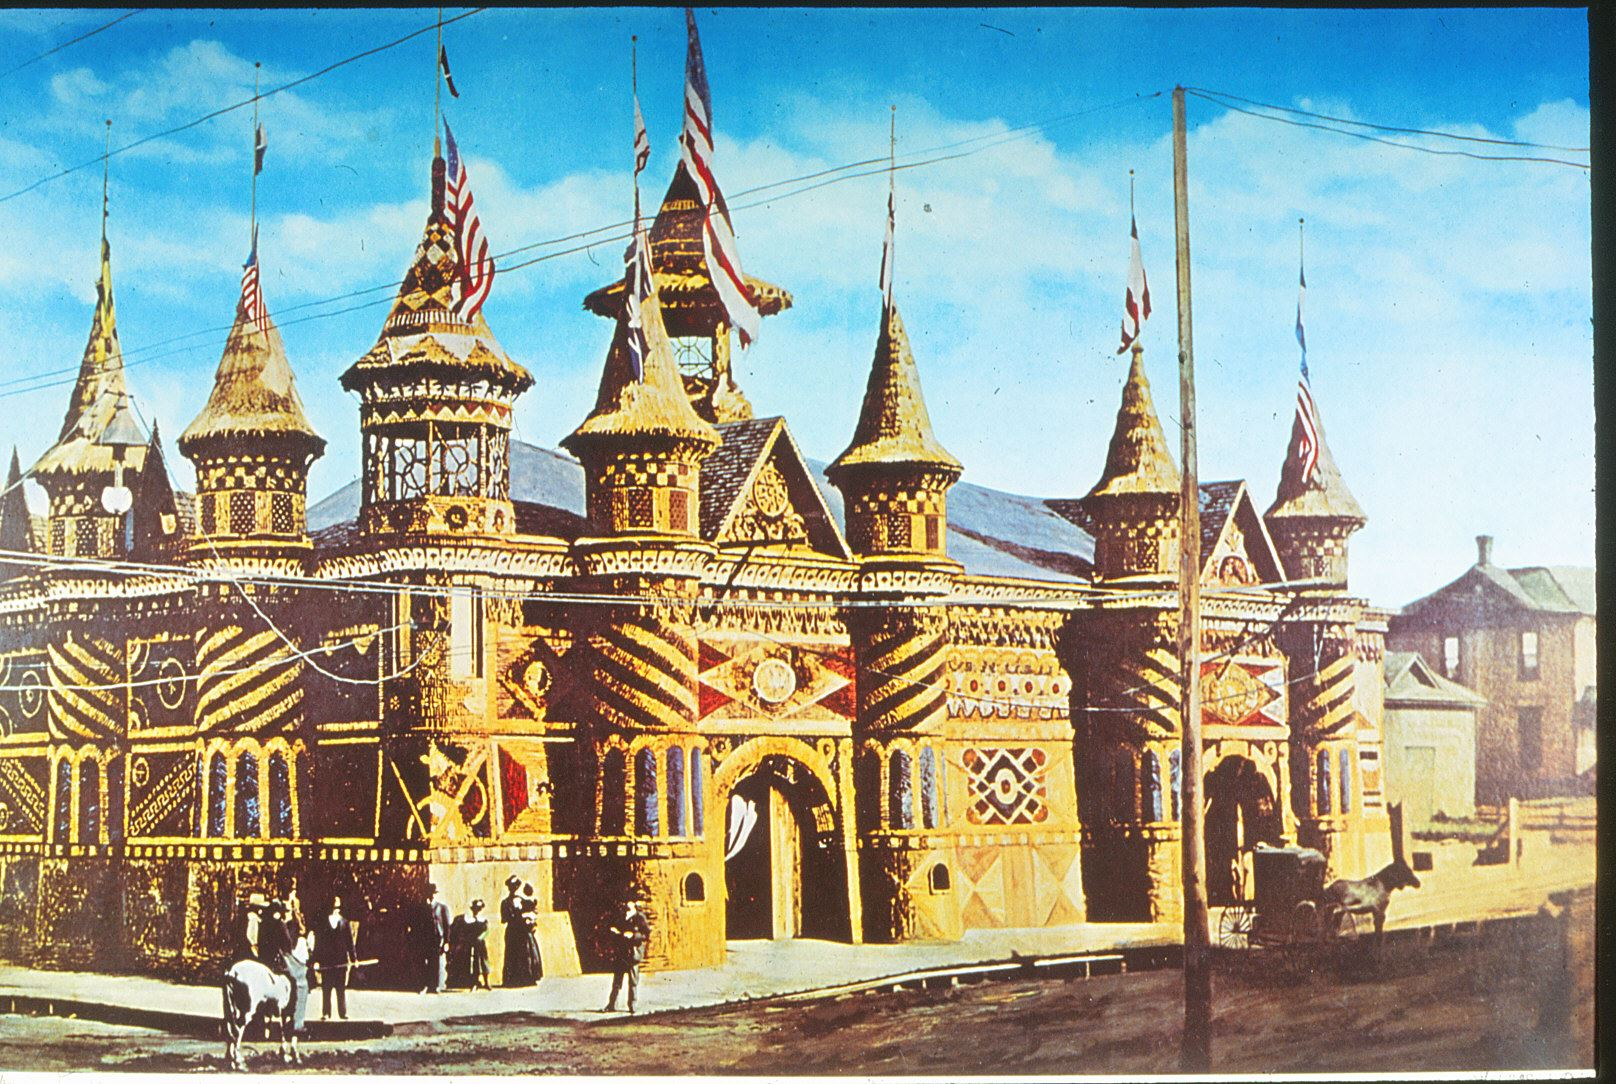 An image of the Corn Palace from 1892.